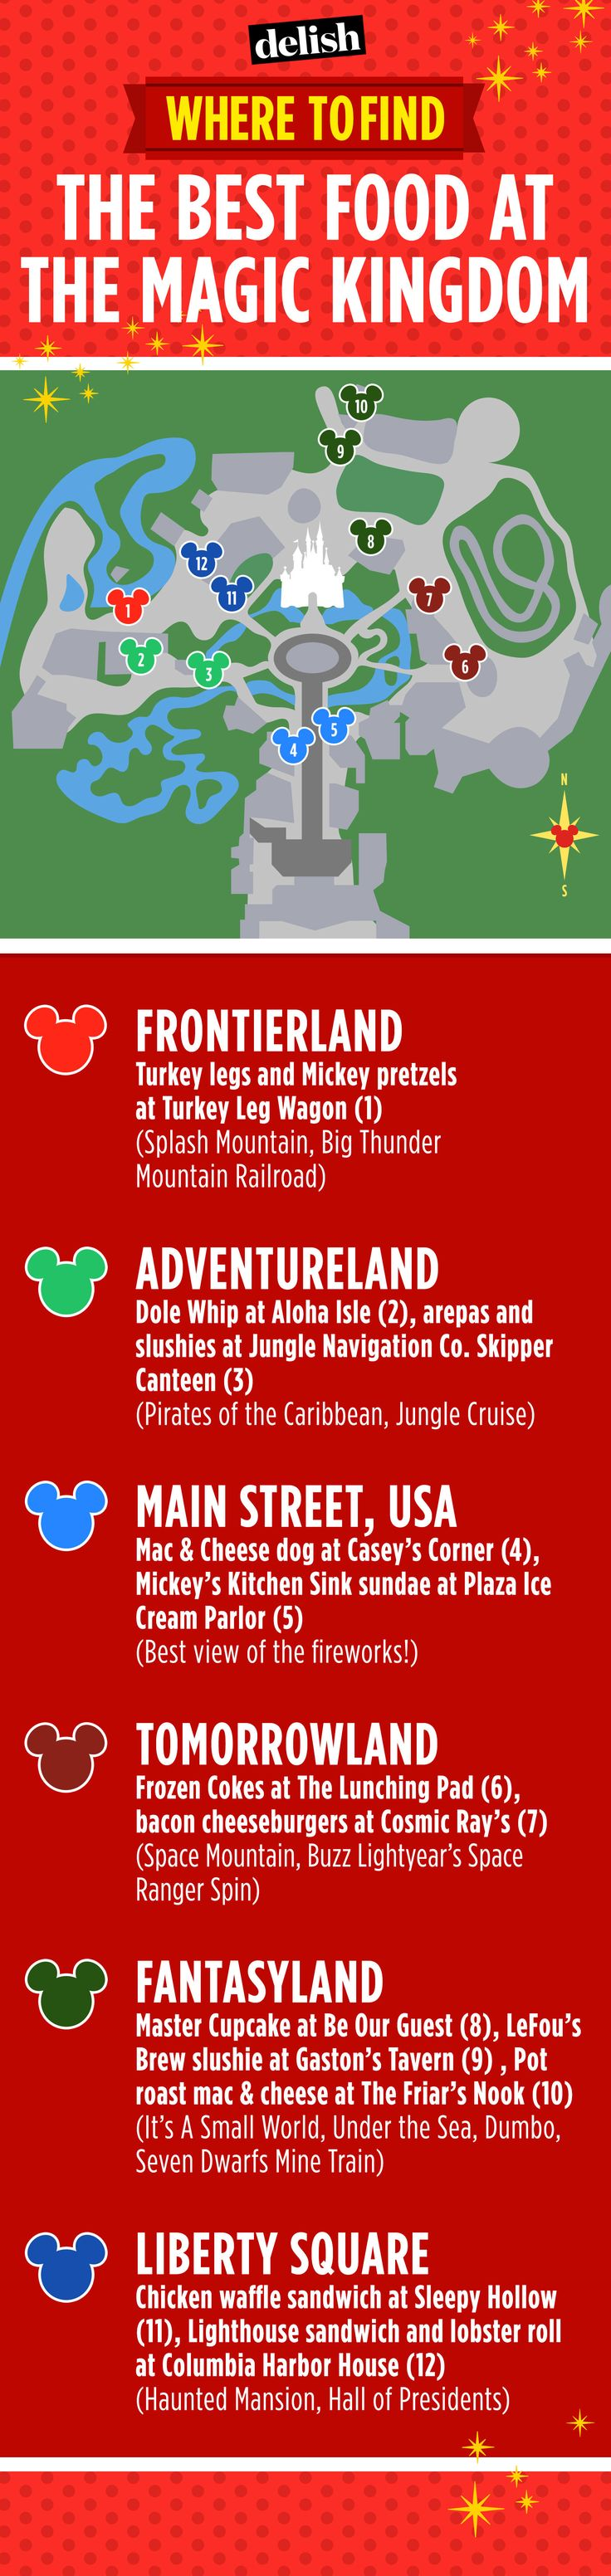 Know The Must-Eats At The Magic Kingdom. - BestProducts.com